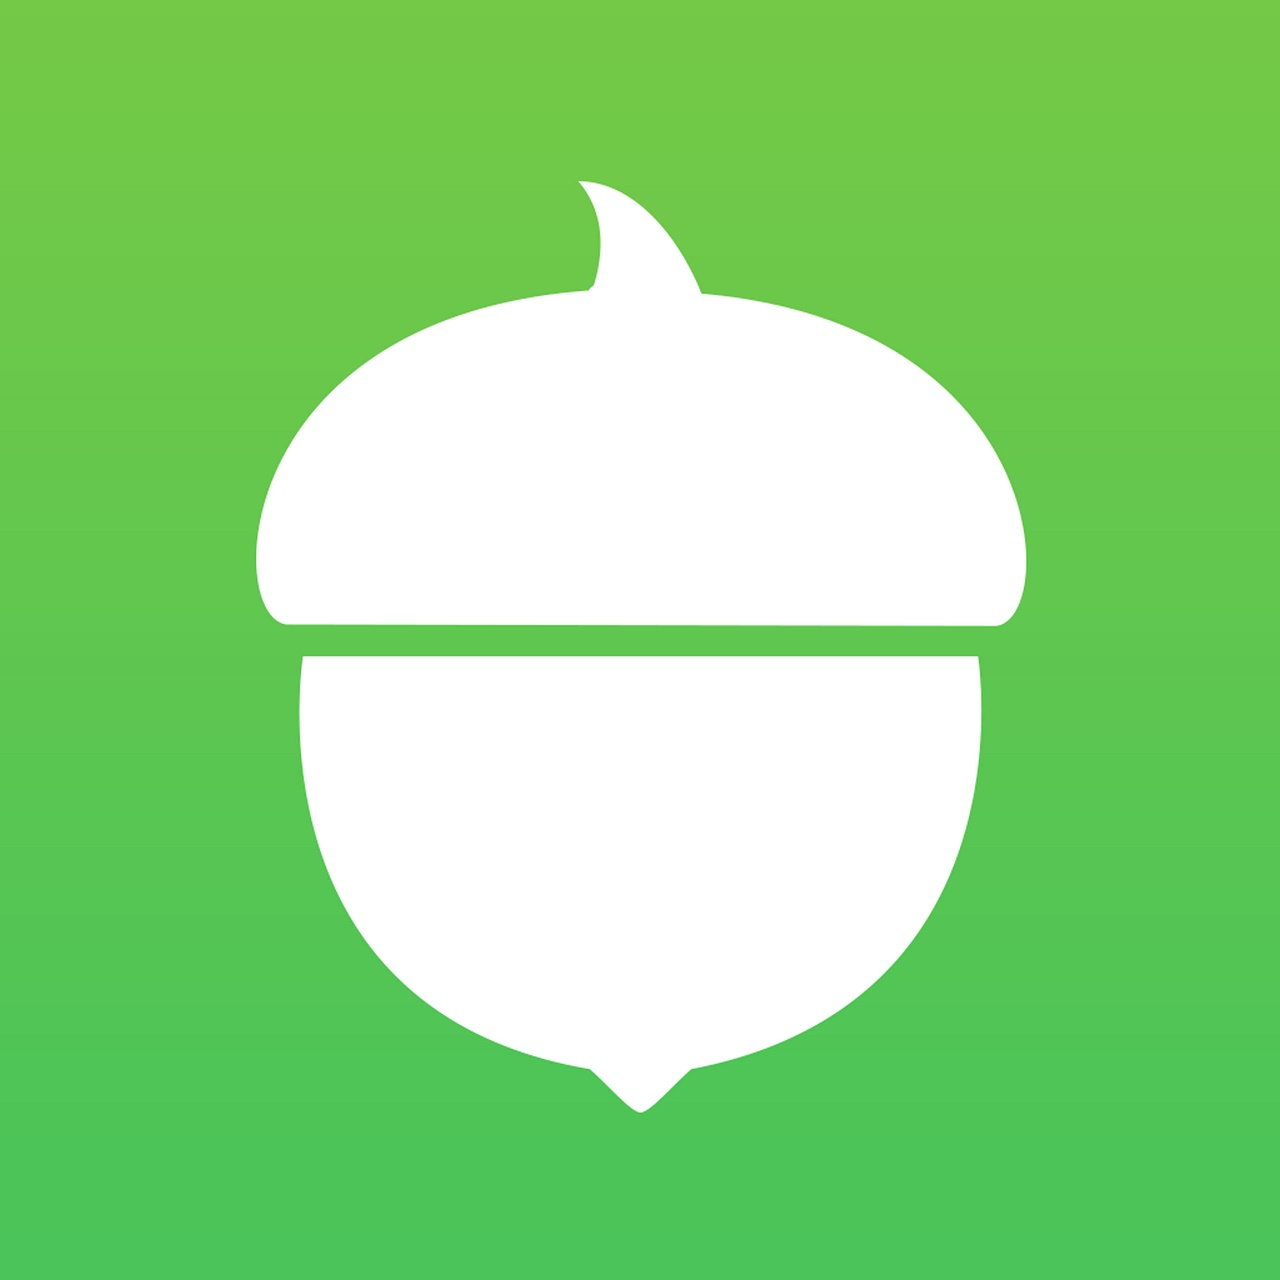 Acorns - Are you struggling to save for your next tattoo, laptop, emergency fund or that trip you promised your friends you'd go on? Acorns rounds up each card purchase you make to the next dollar, and invests that spare change in an account that you can manage and track in real time, without the temptation to spend.